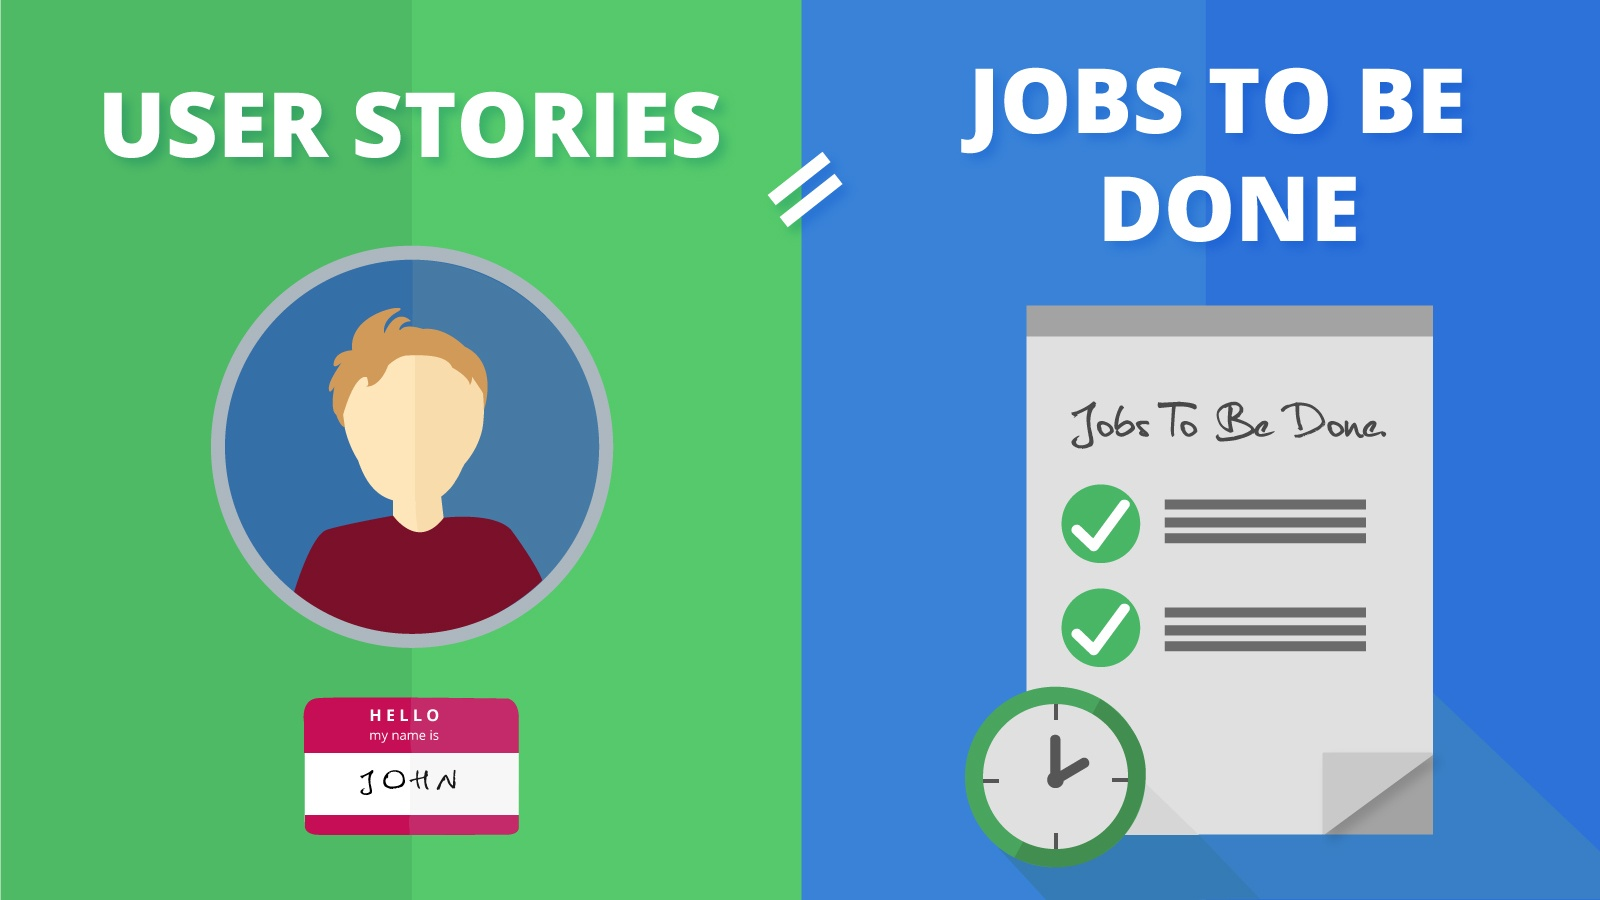 Jobs To Be Done versus User Stories